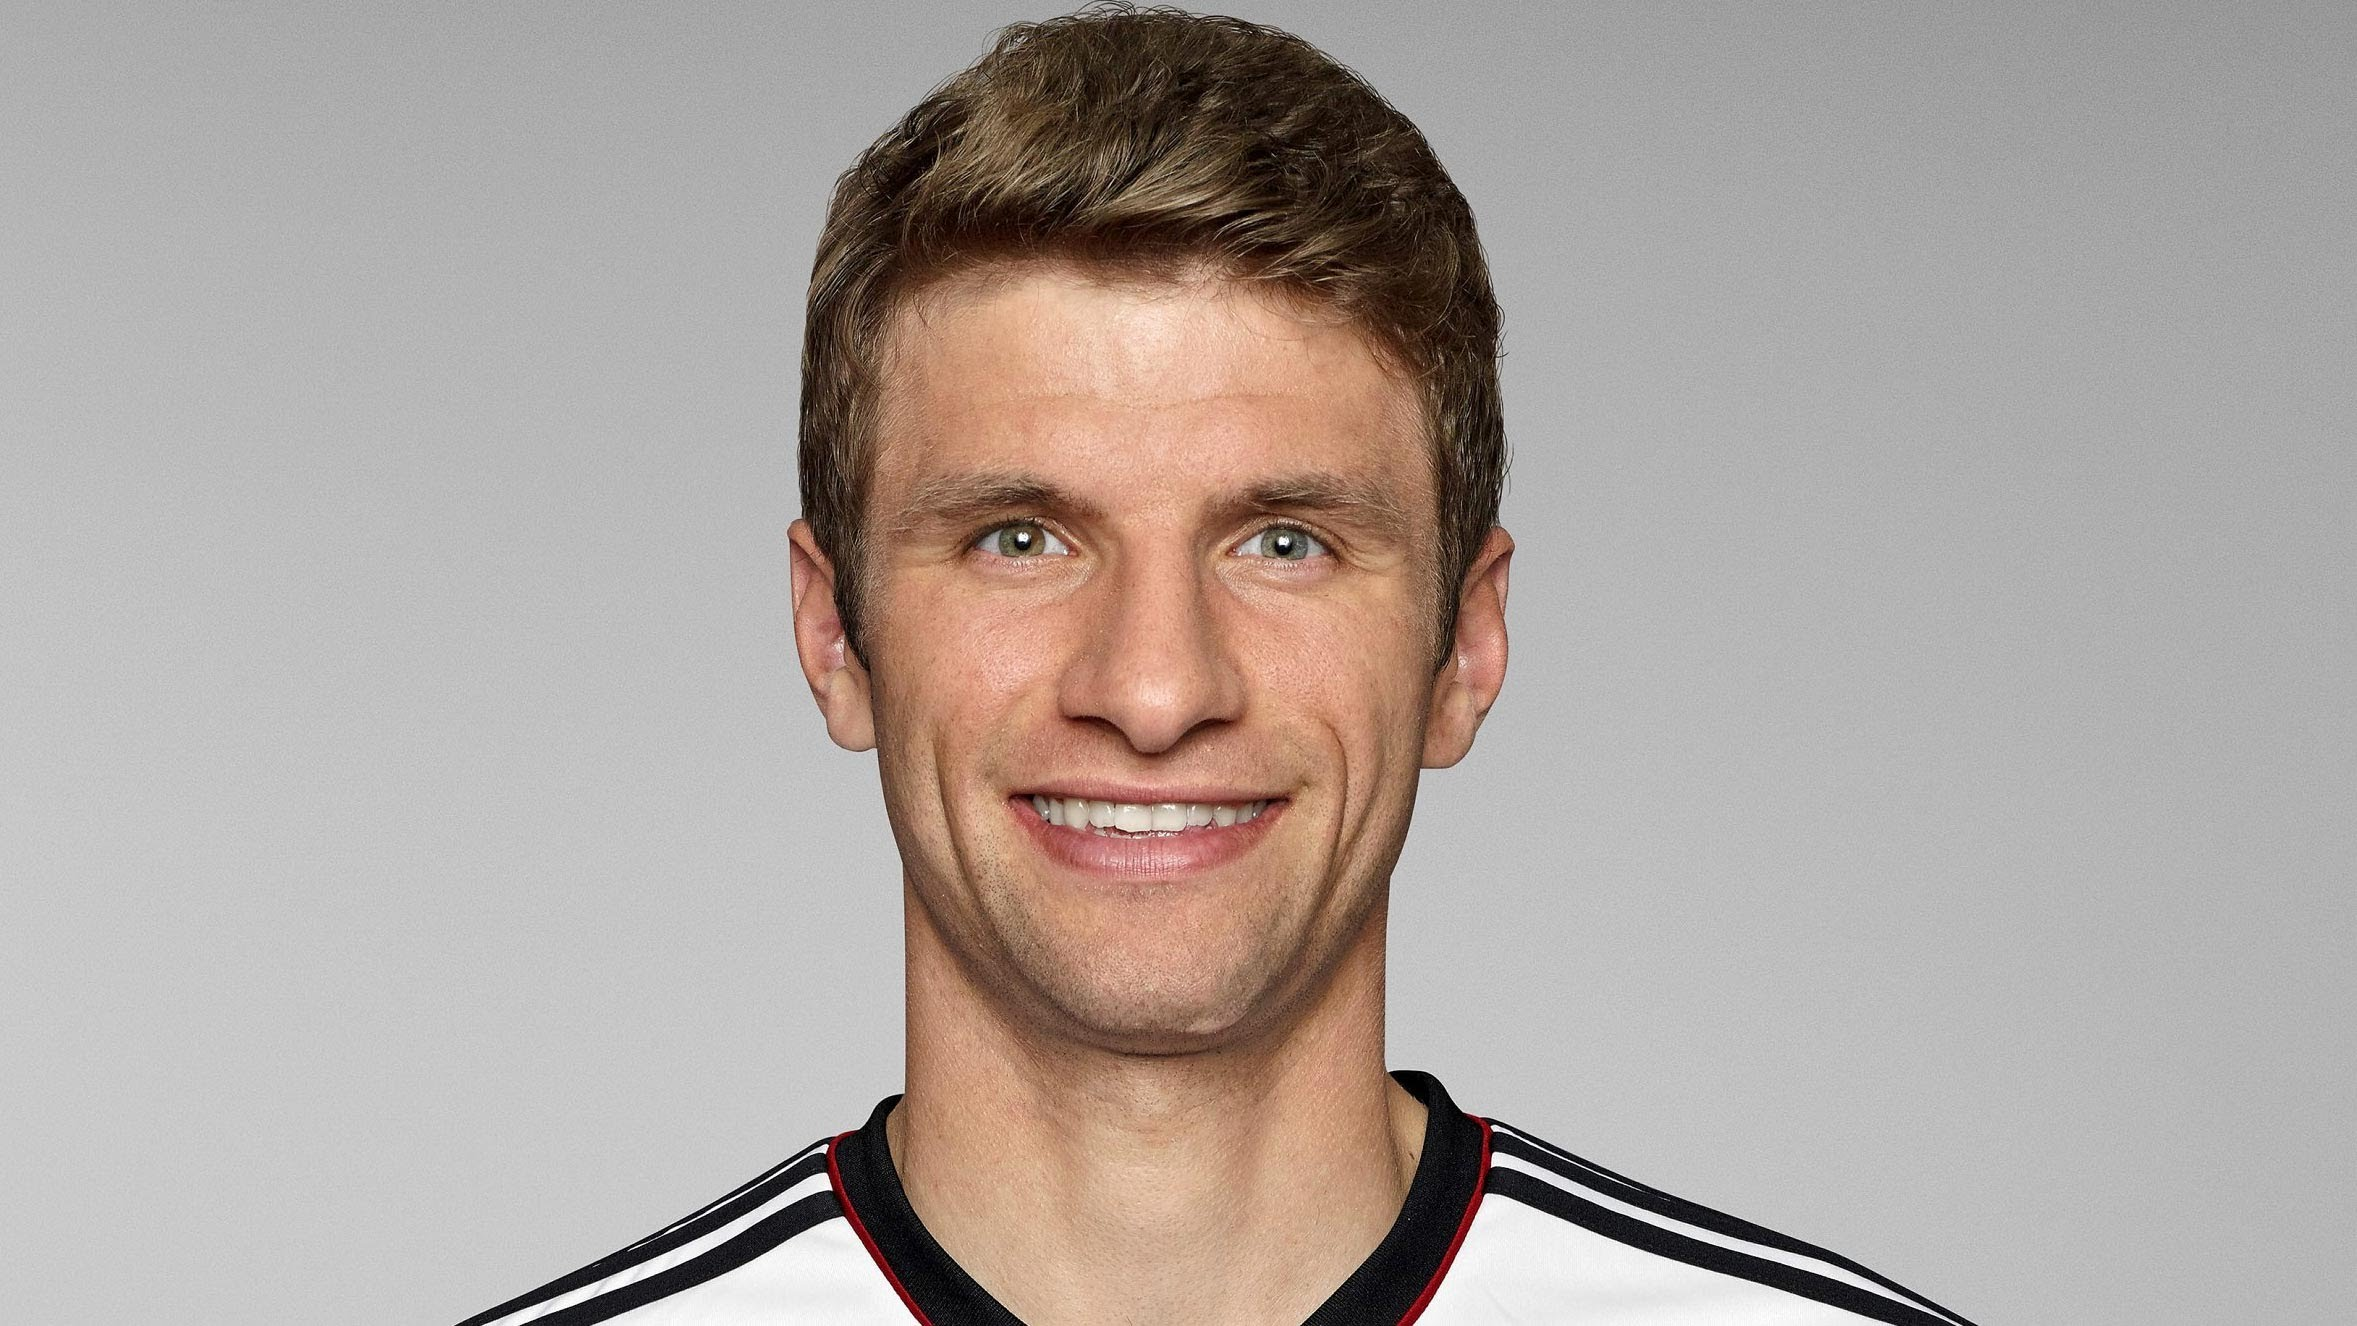 Michael Jordan Wallpaper Hd Thomas Muller Wallpapers High Resolution And Quality Download